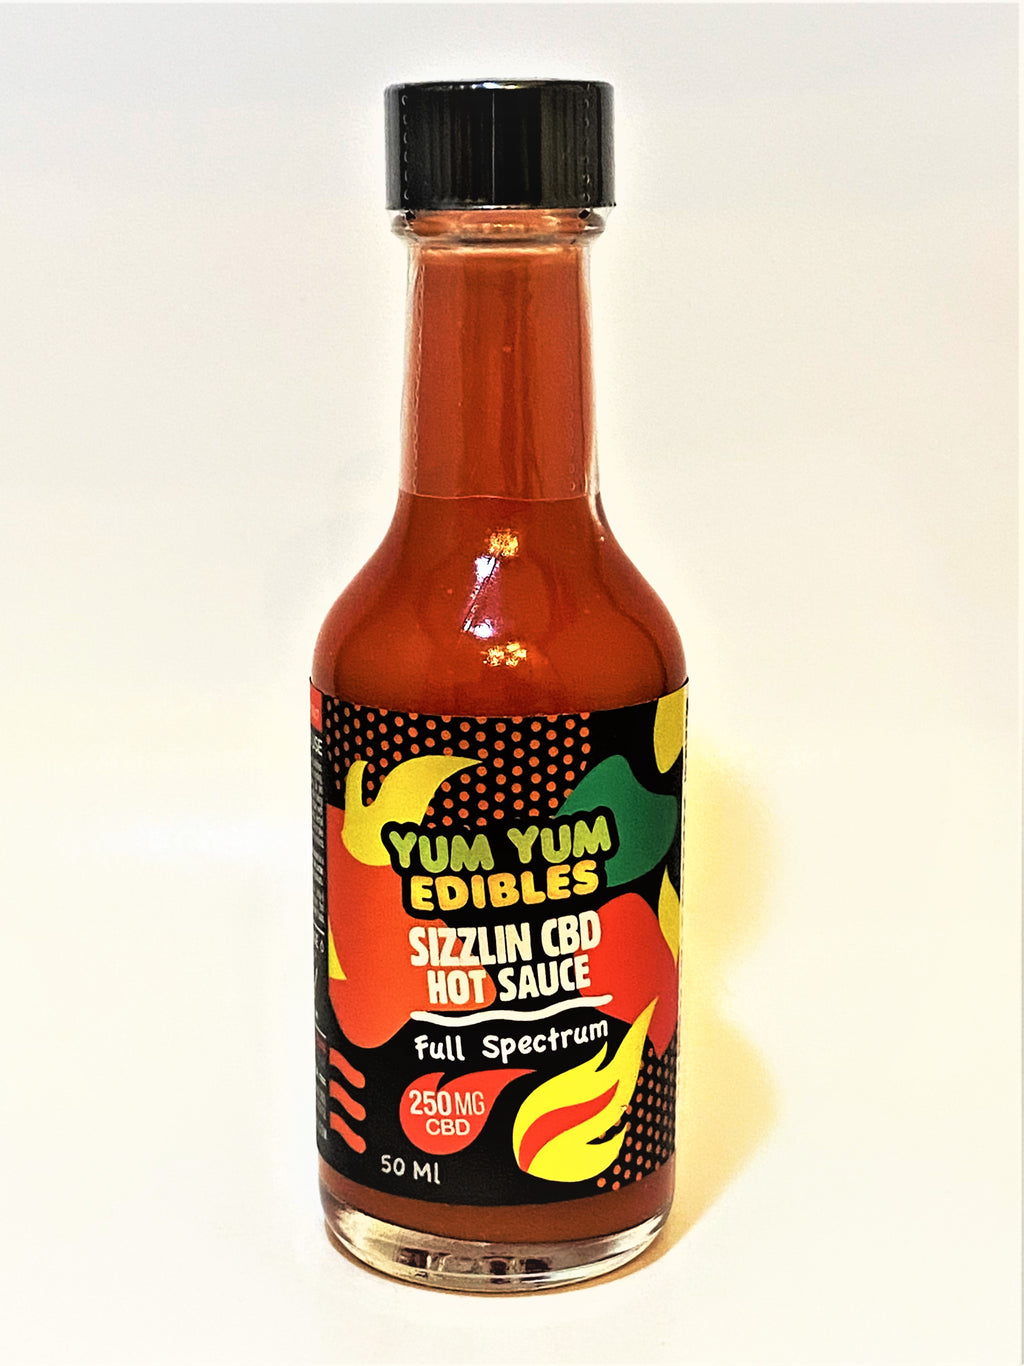 Sizzlin CBD Hot Sauce - 250mg Full Spectrum